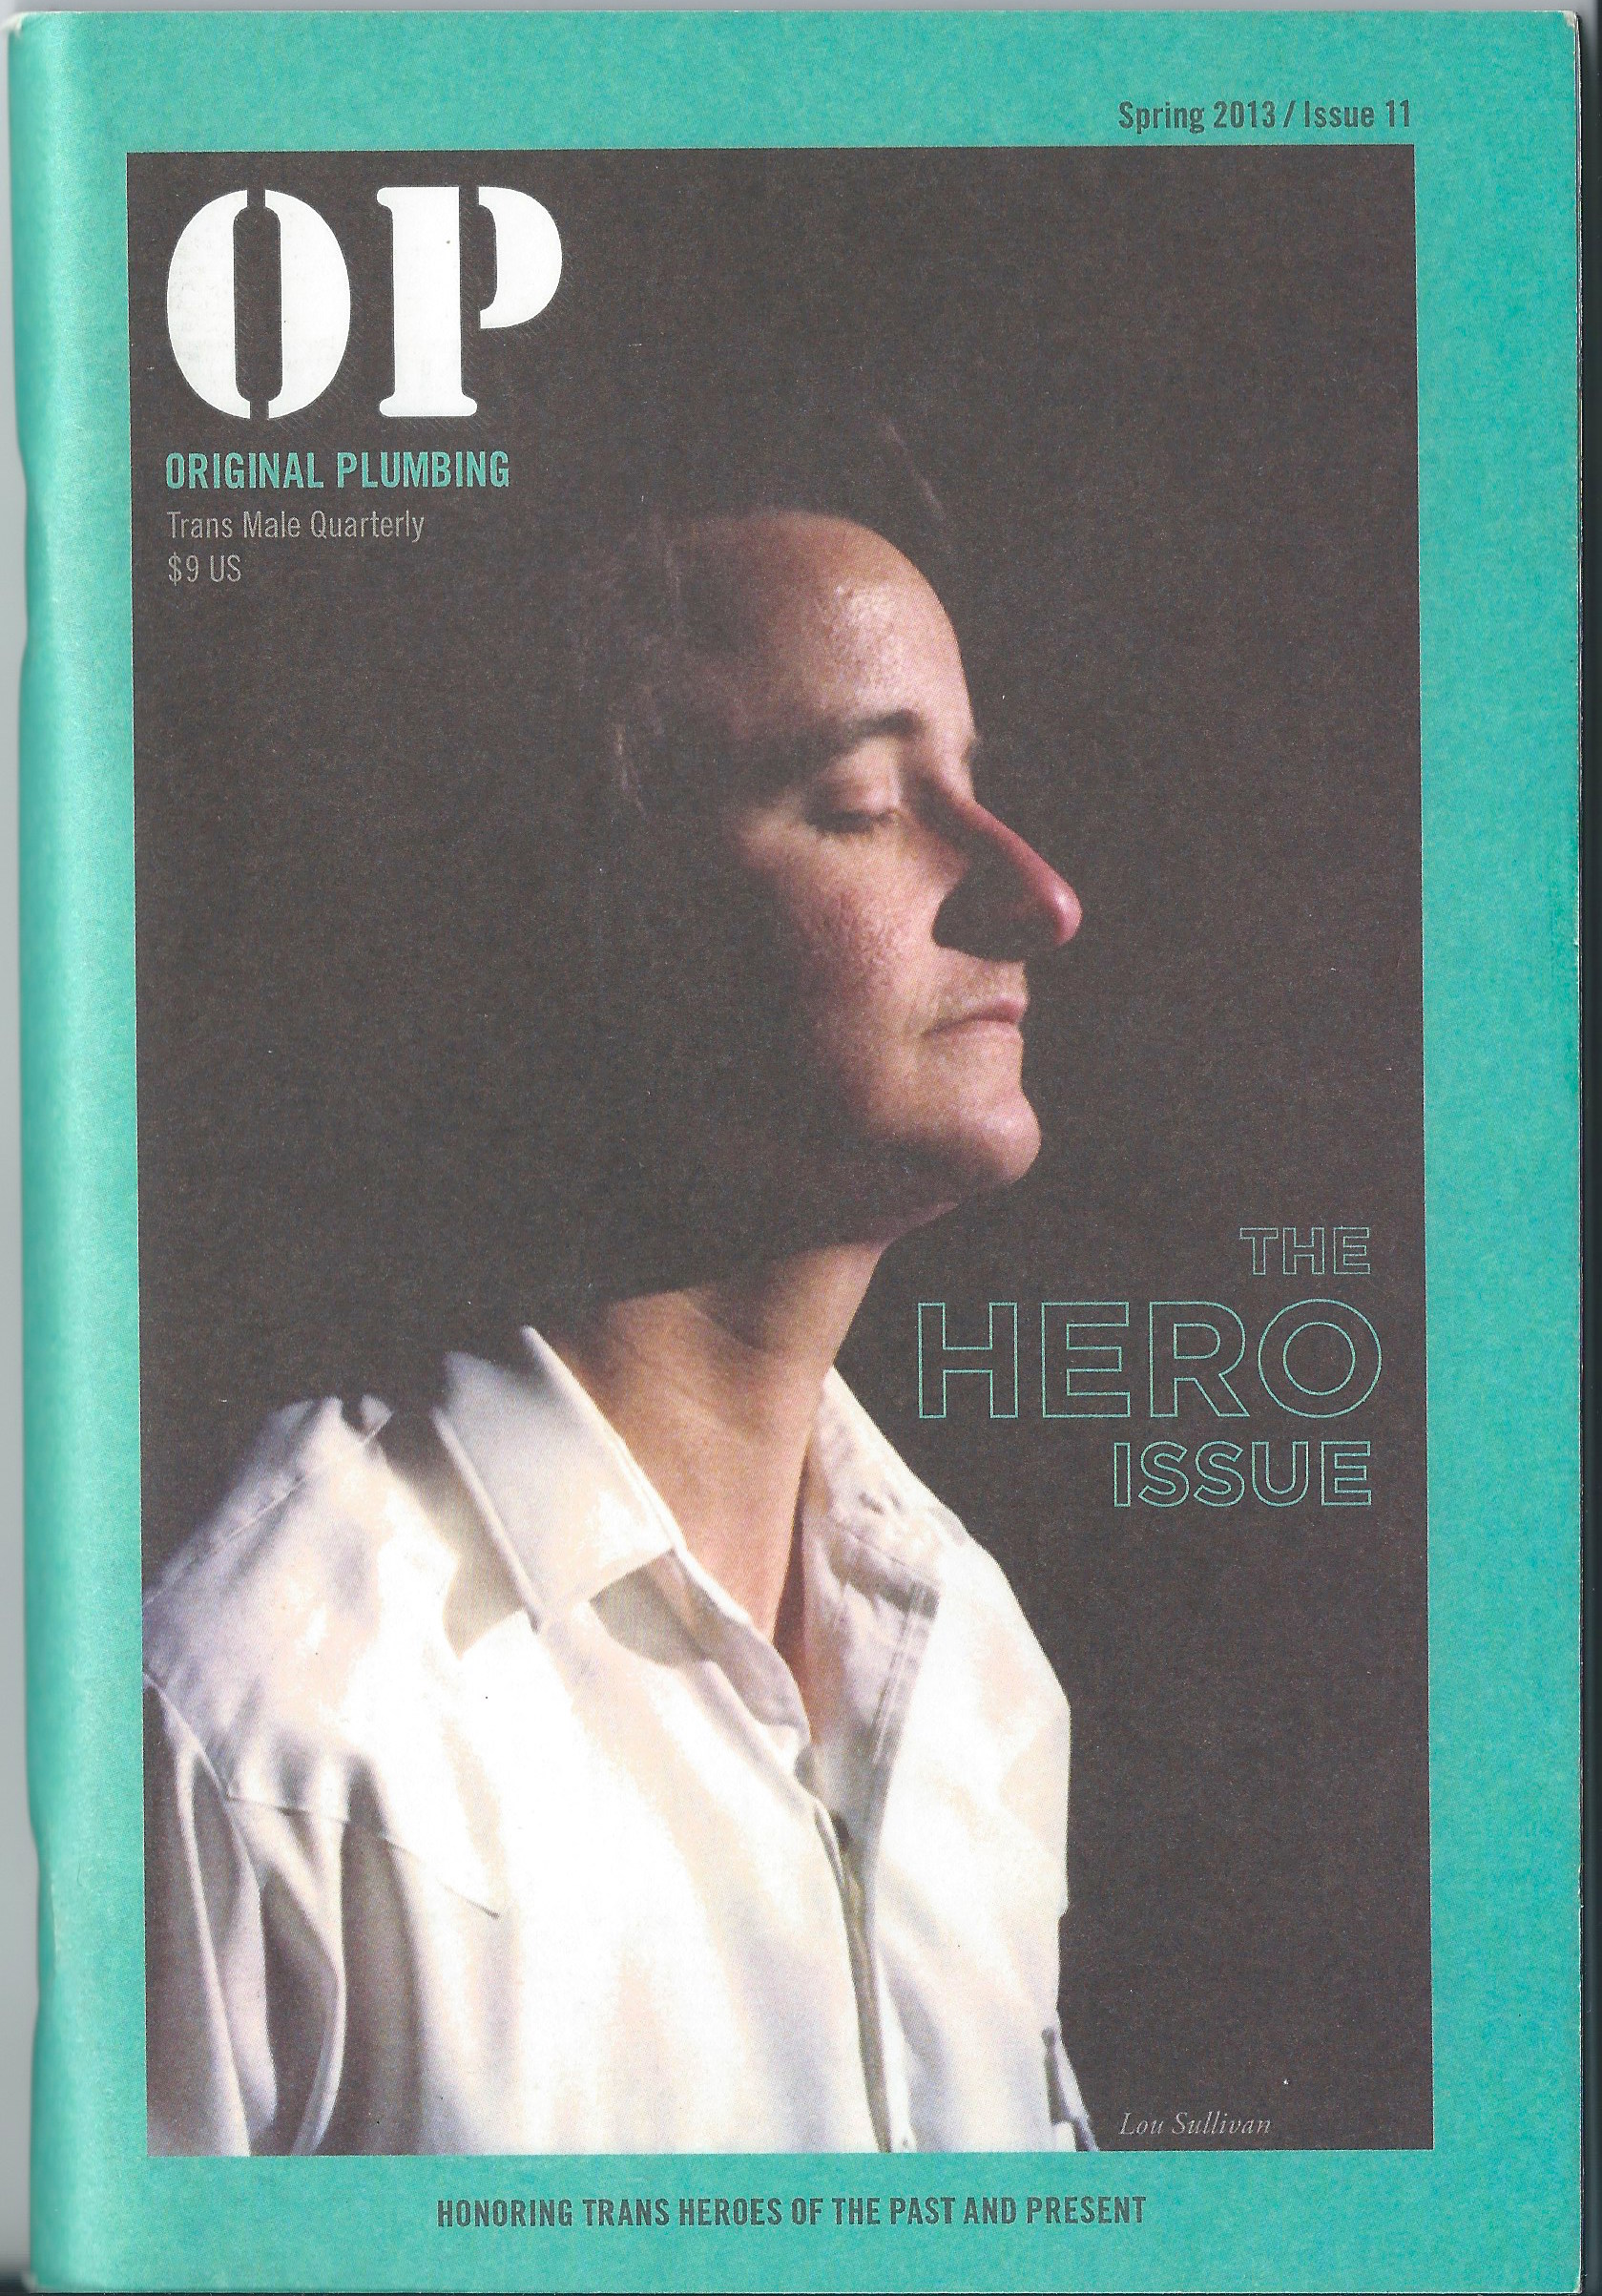 OP #11, Cover Photo of Lou Sullivan reprinted with permission of GLBT Historical Society